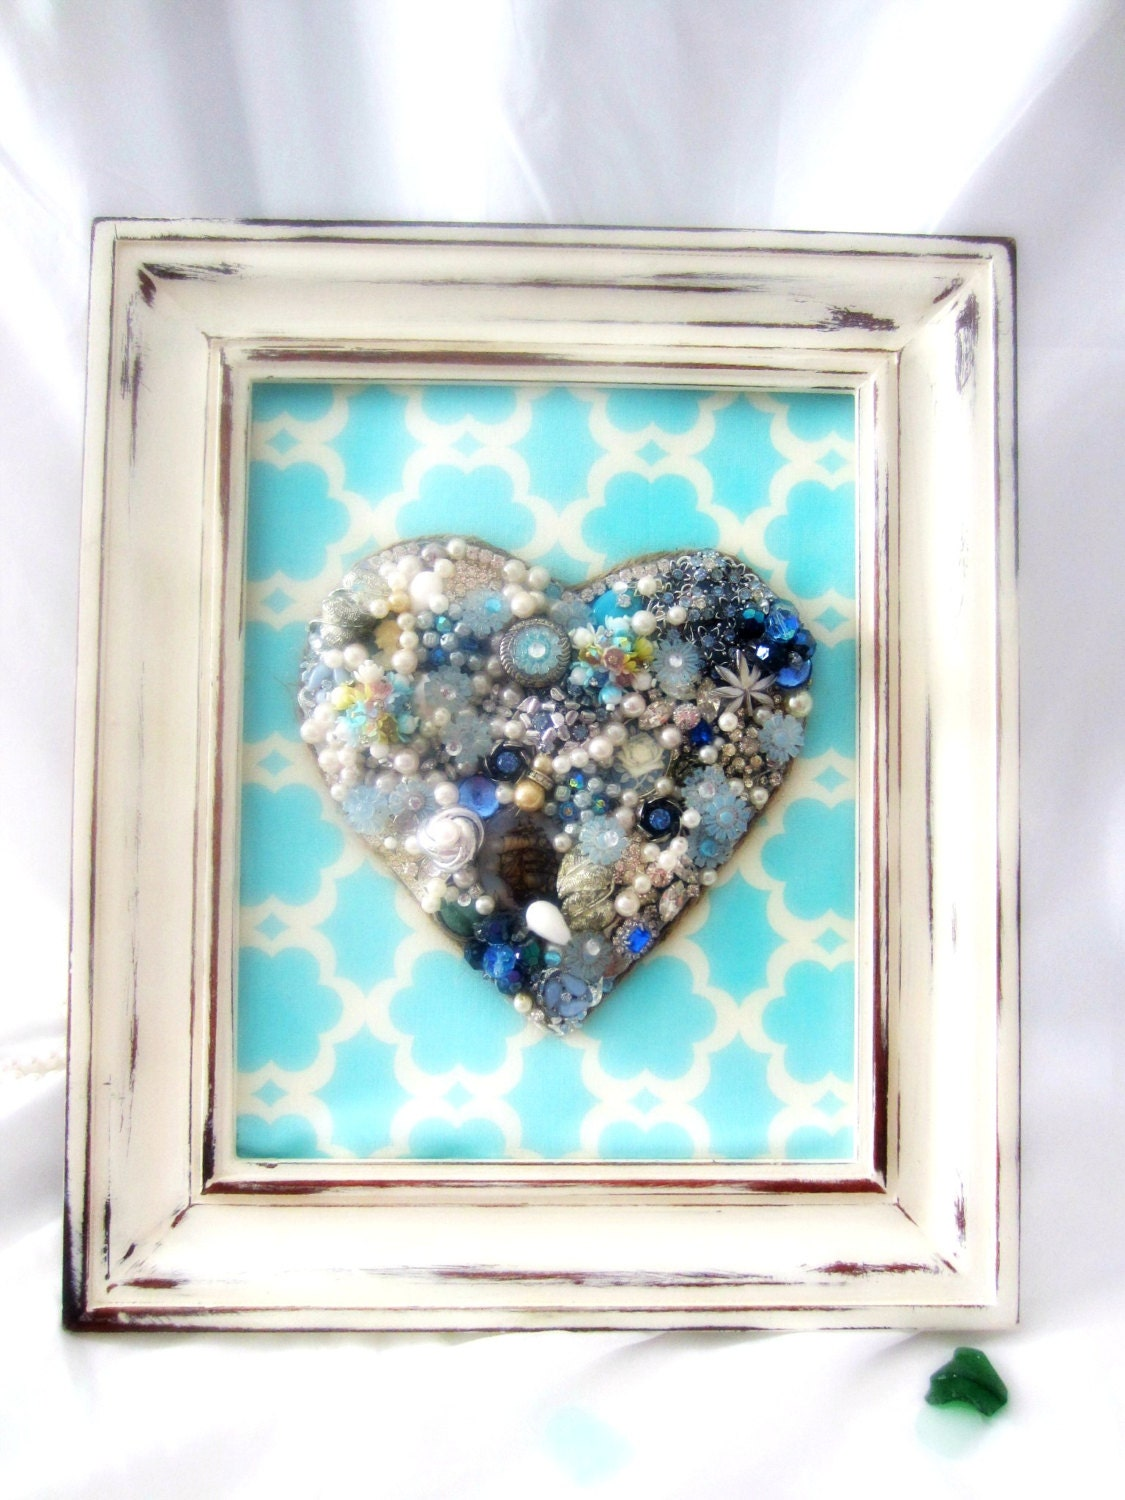 Vintage Jewelry Mosaic Wall Decor Blue Heart - northandsouthshabby